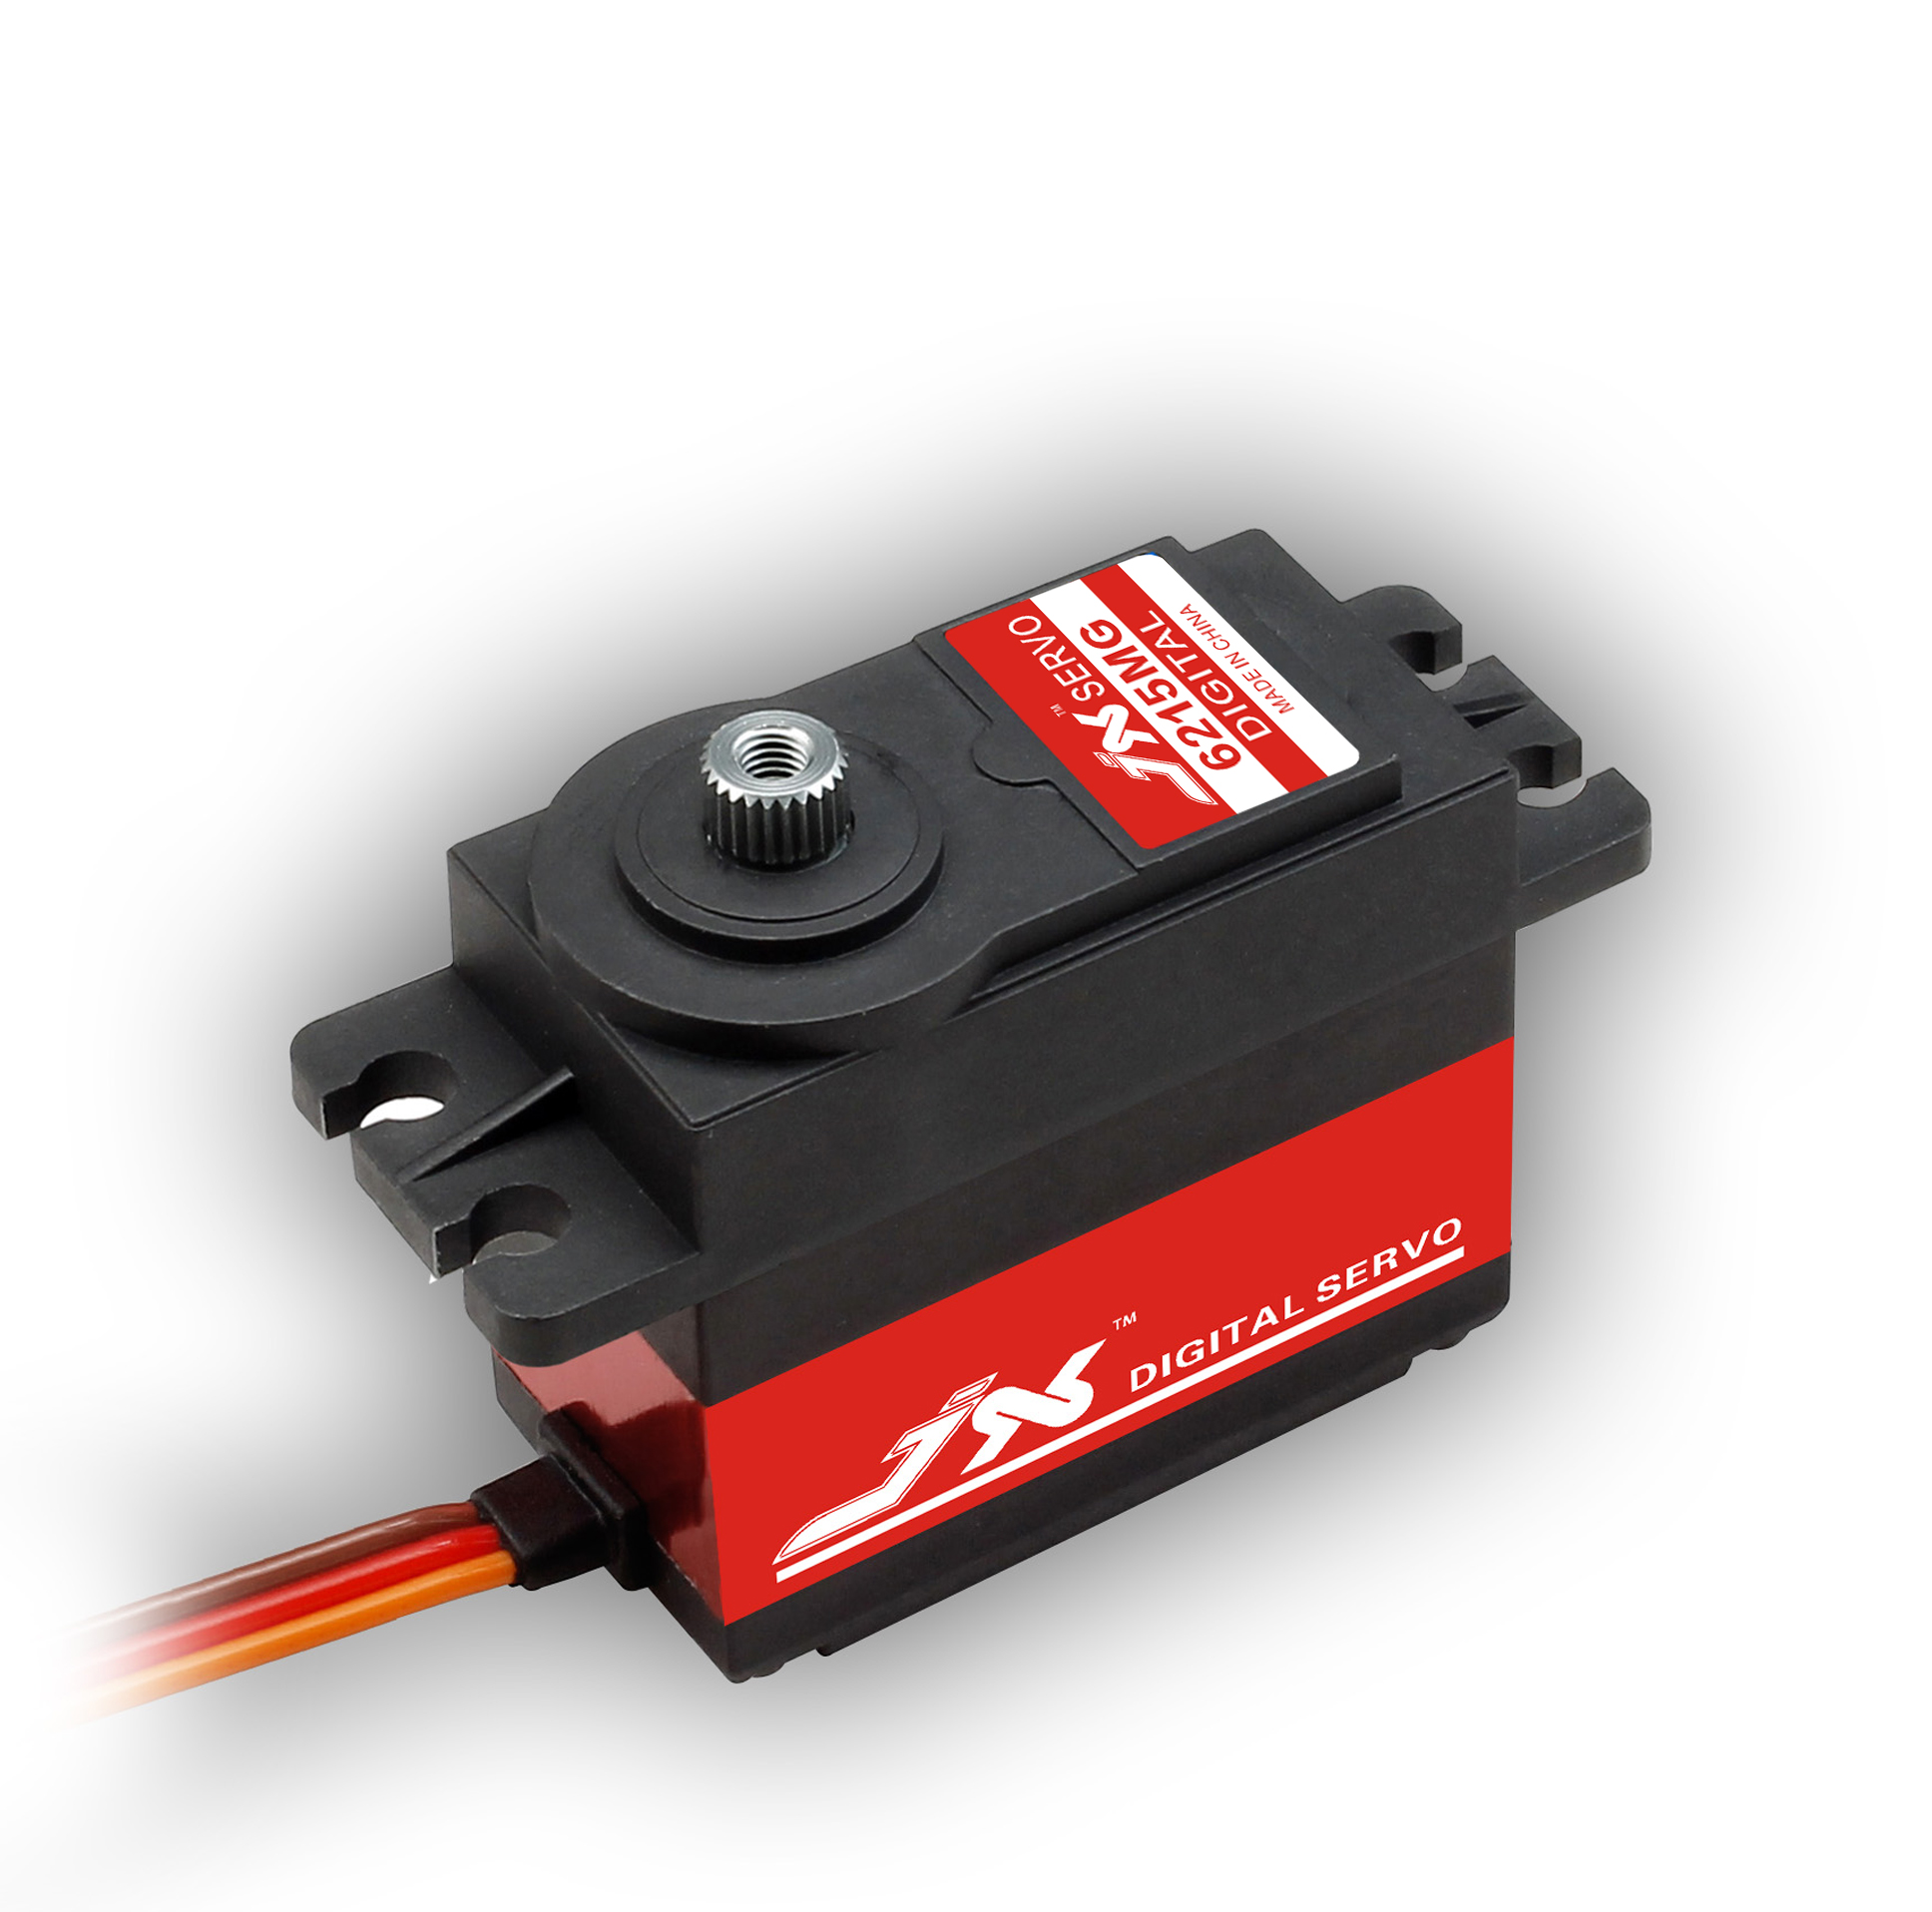 Superior Hobby JX PDI-6215MG 15KG High Precision Metal Gear Digital Standard Servo jx pdi 6221mg 20kg large torque digital standard servo for rc model